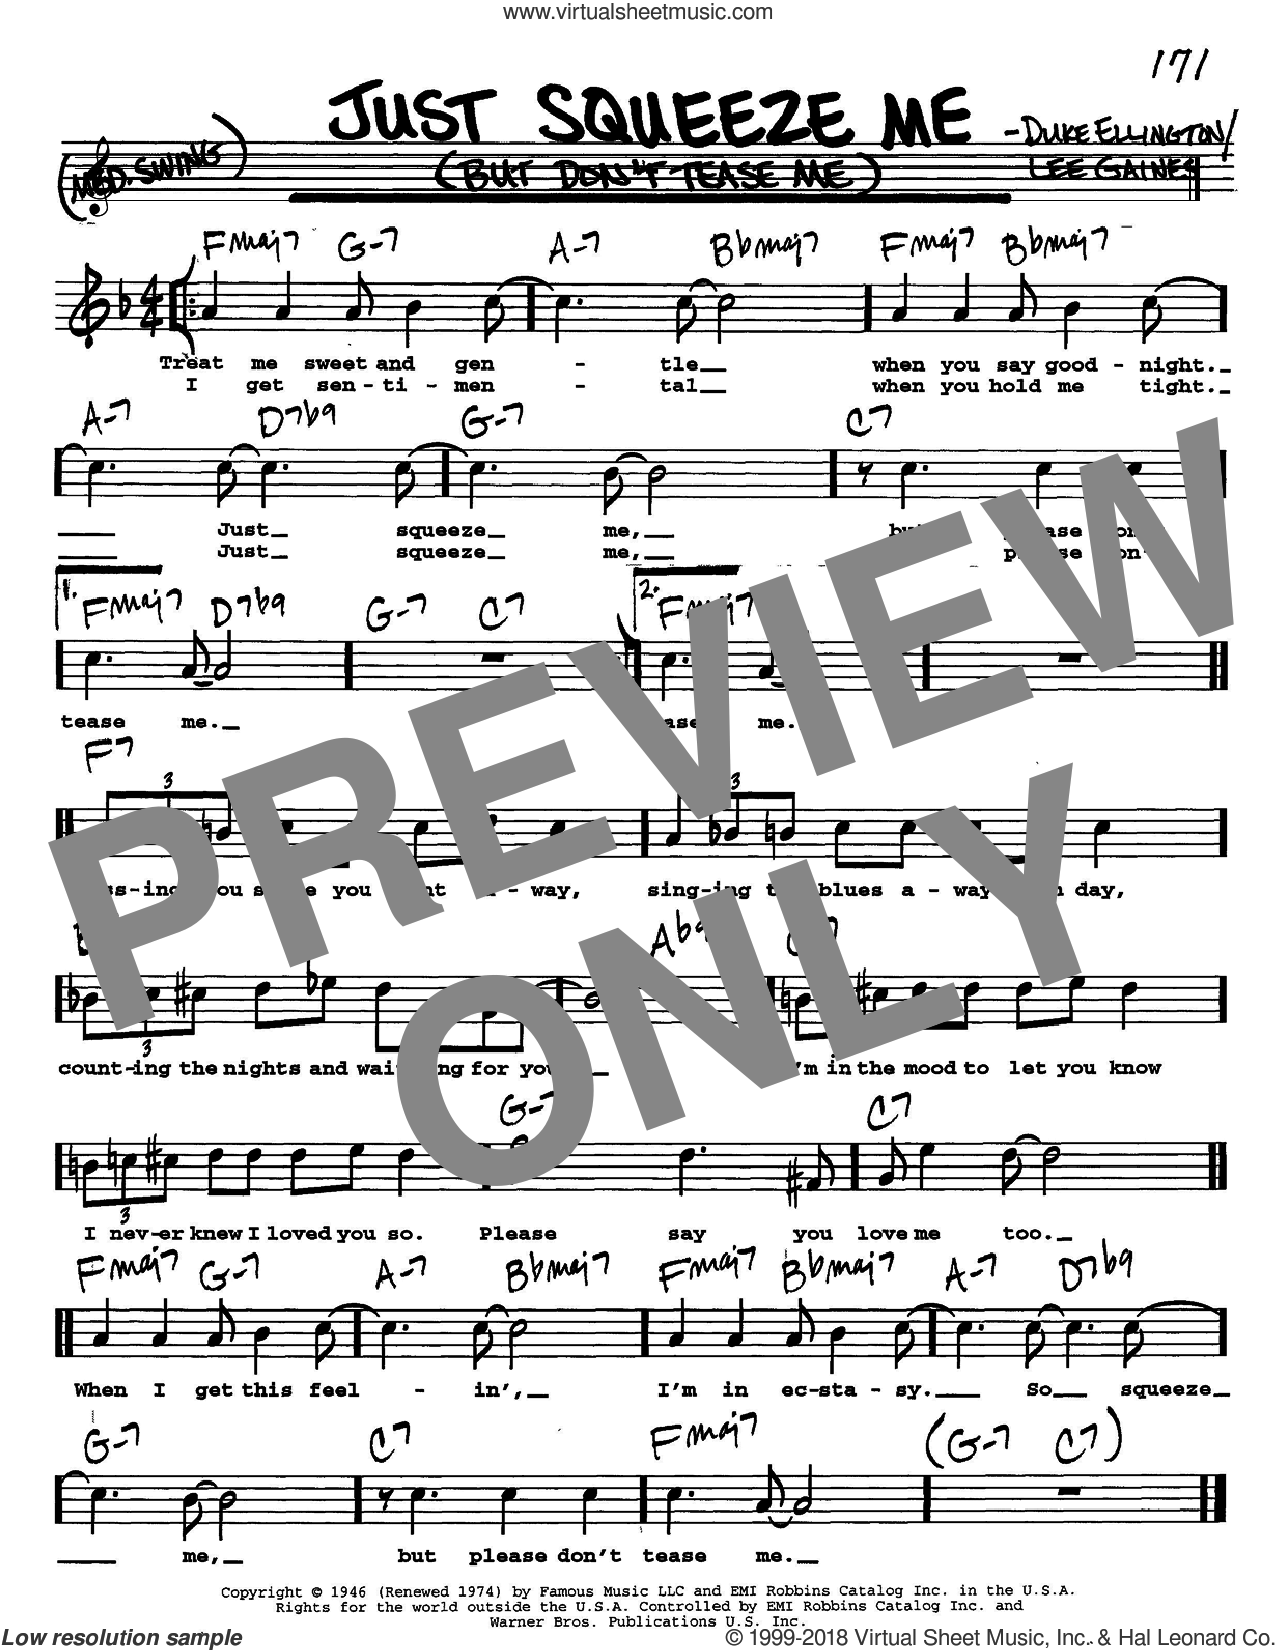 Just Squeeze Me (But Don't Tease Me) sheet music for voice and other instruments  by Duke Ellington and Lee Gaines, intermediate skill level